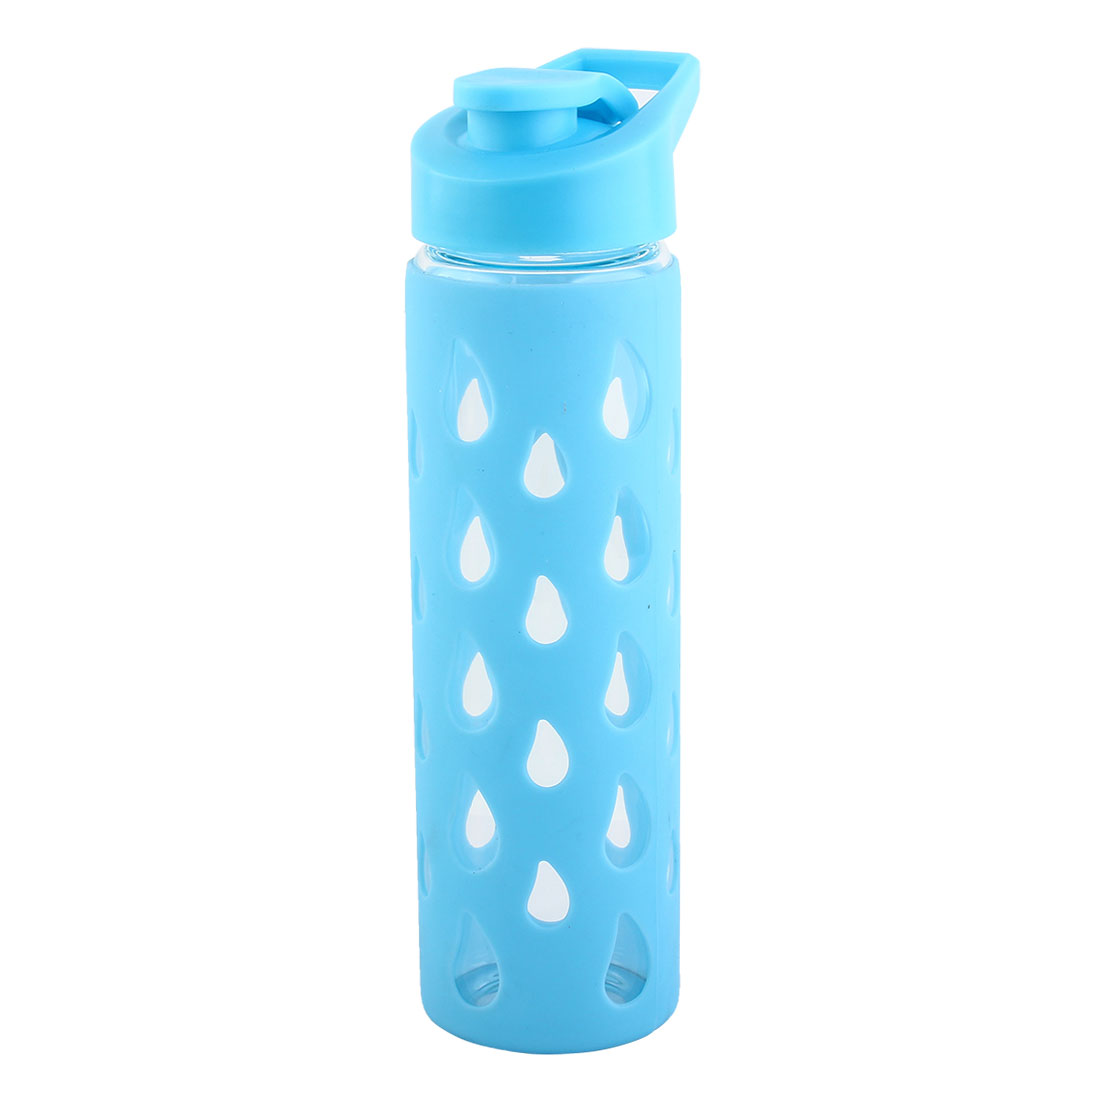 Silicone Sleeve Water Bottle Fruit Juice Cup Portable Driking Mug Driving Canteen Hiking Kettle Blue 550ml